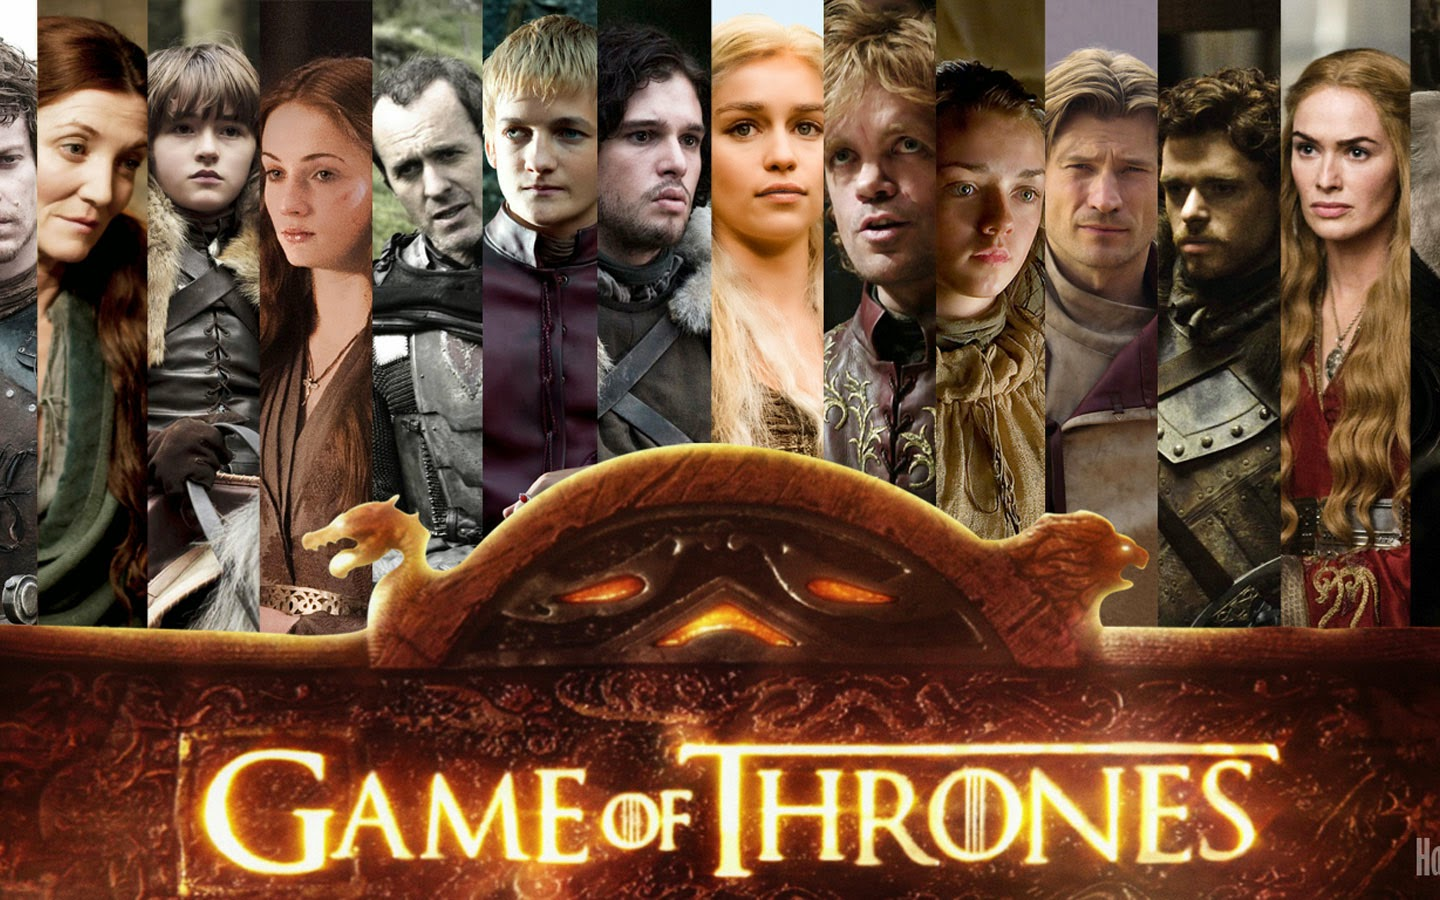 trone fer game of thrones saison 4 enfin la!